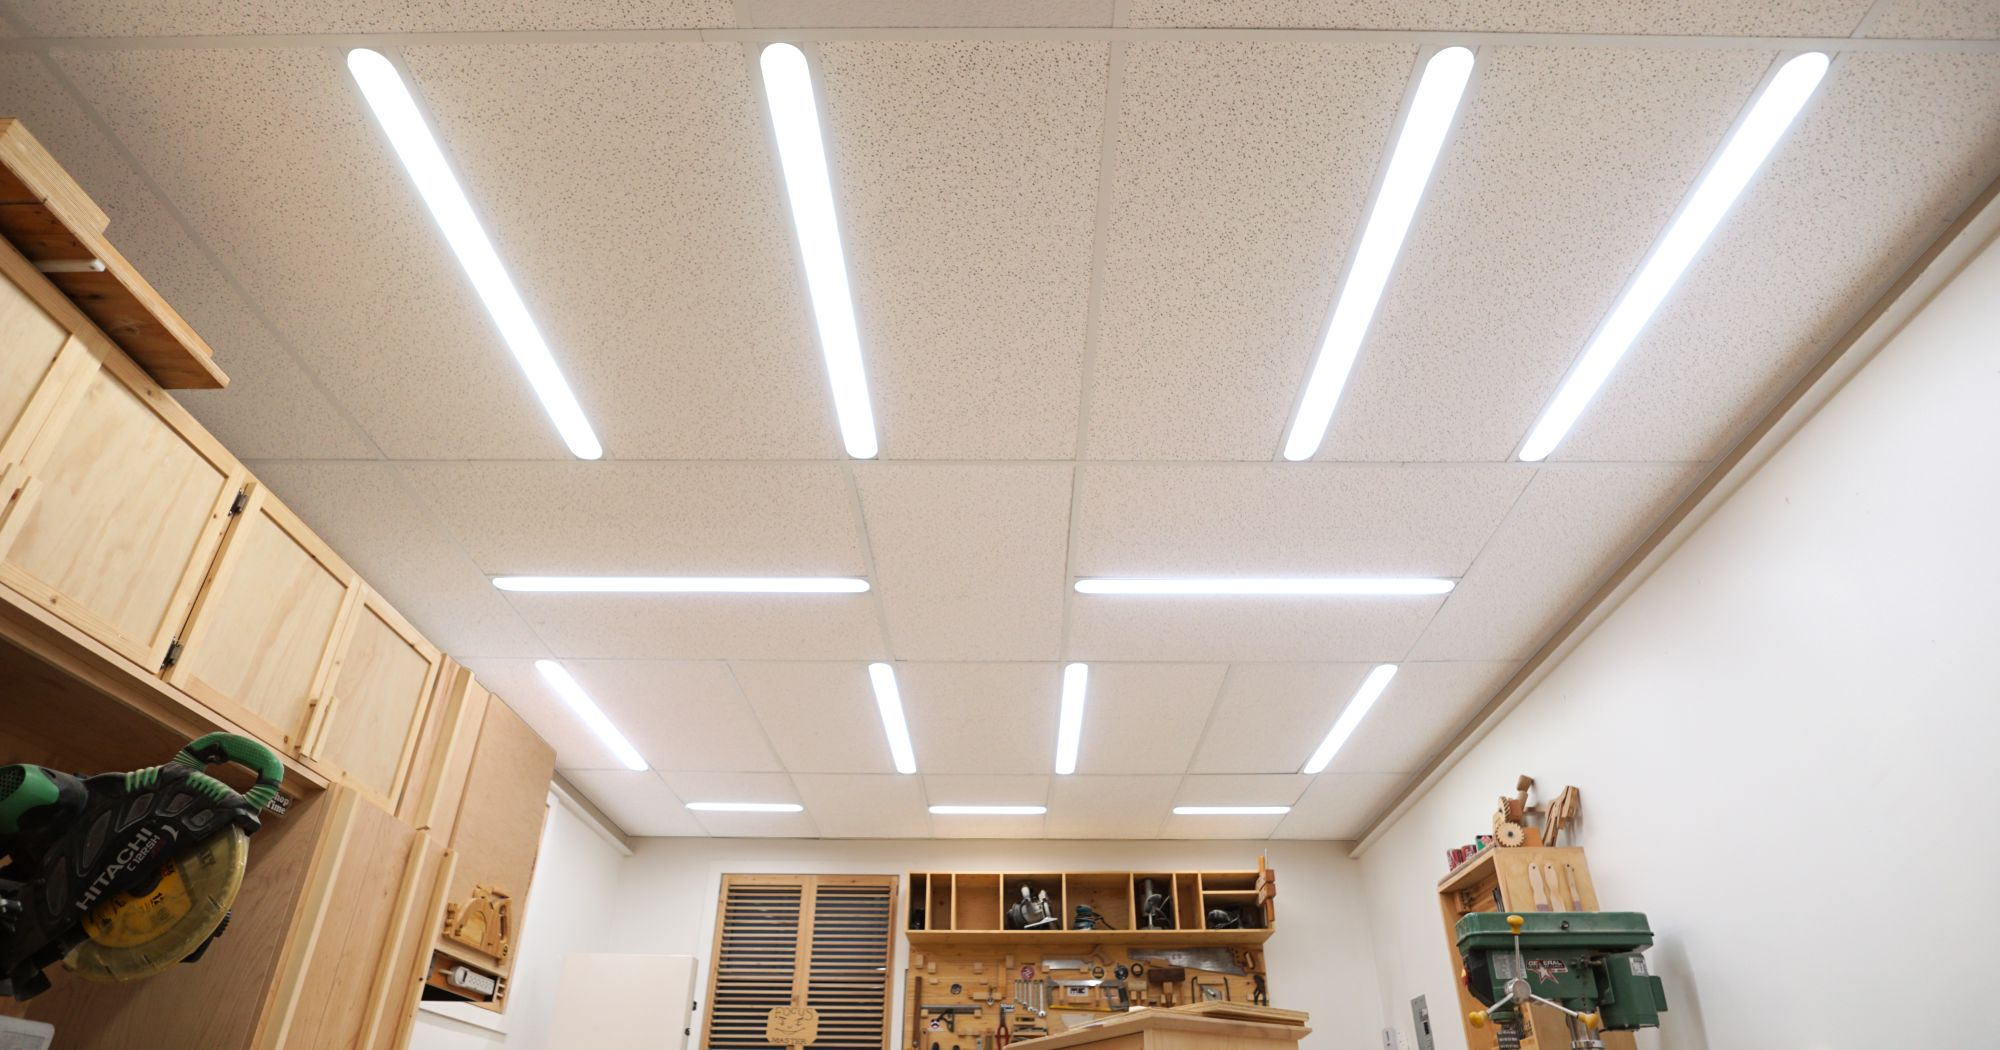 Workshop Lighting Upgrade - IBUILDIT.CA